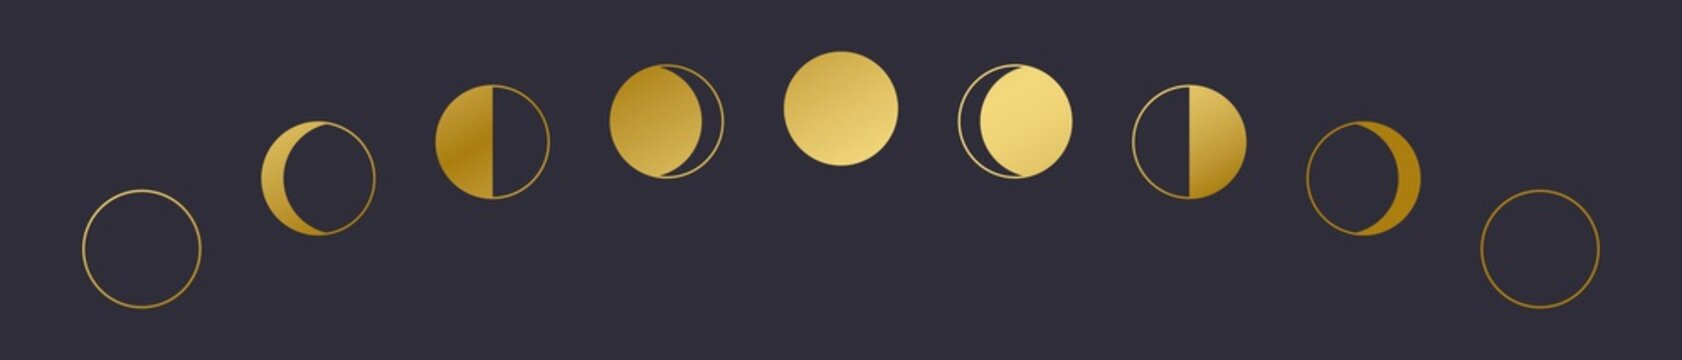 Golden Moon phases icon. Eps 10.